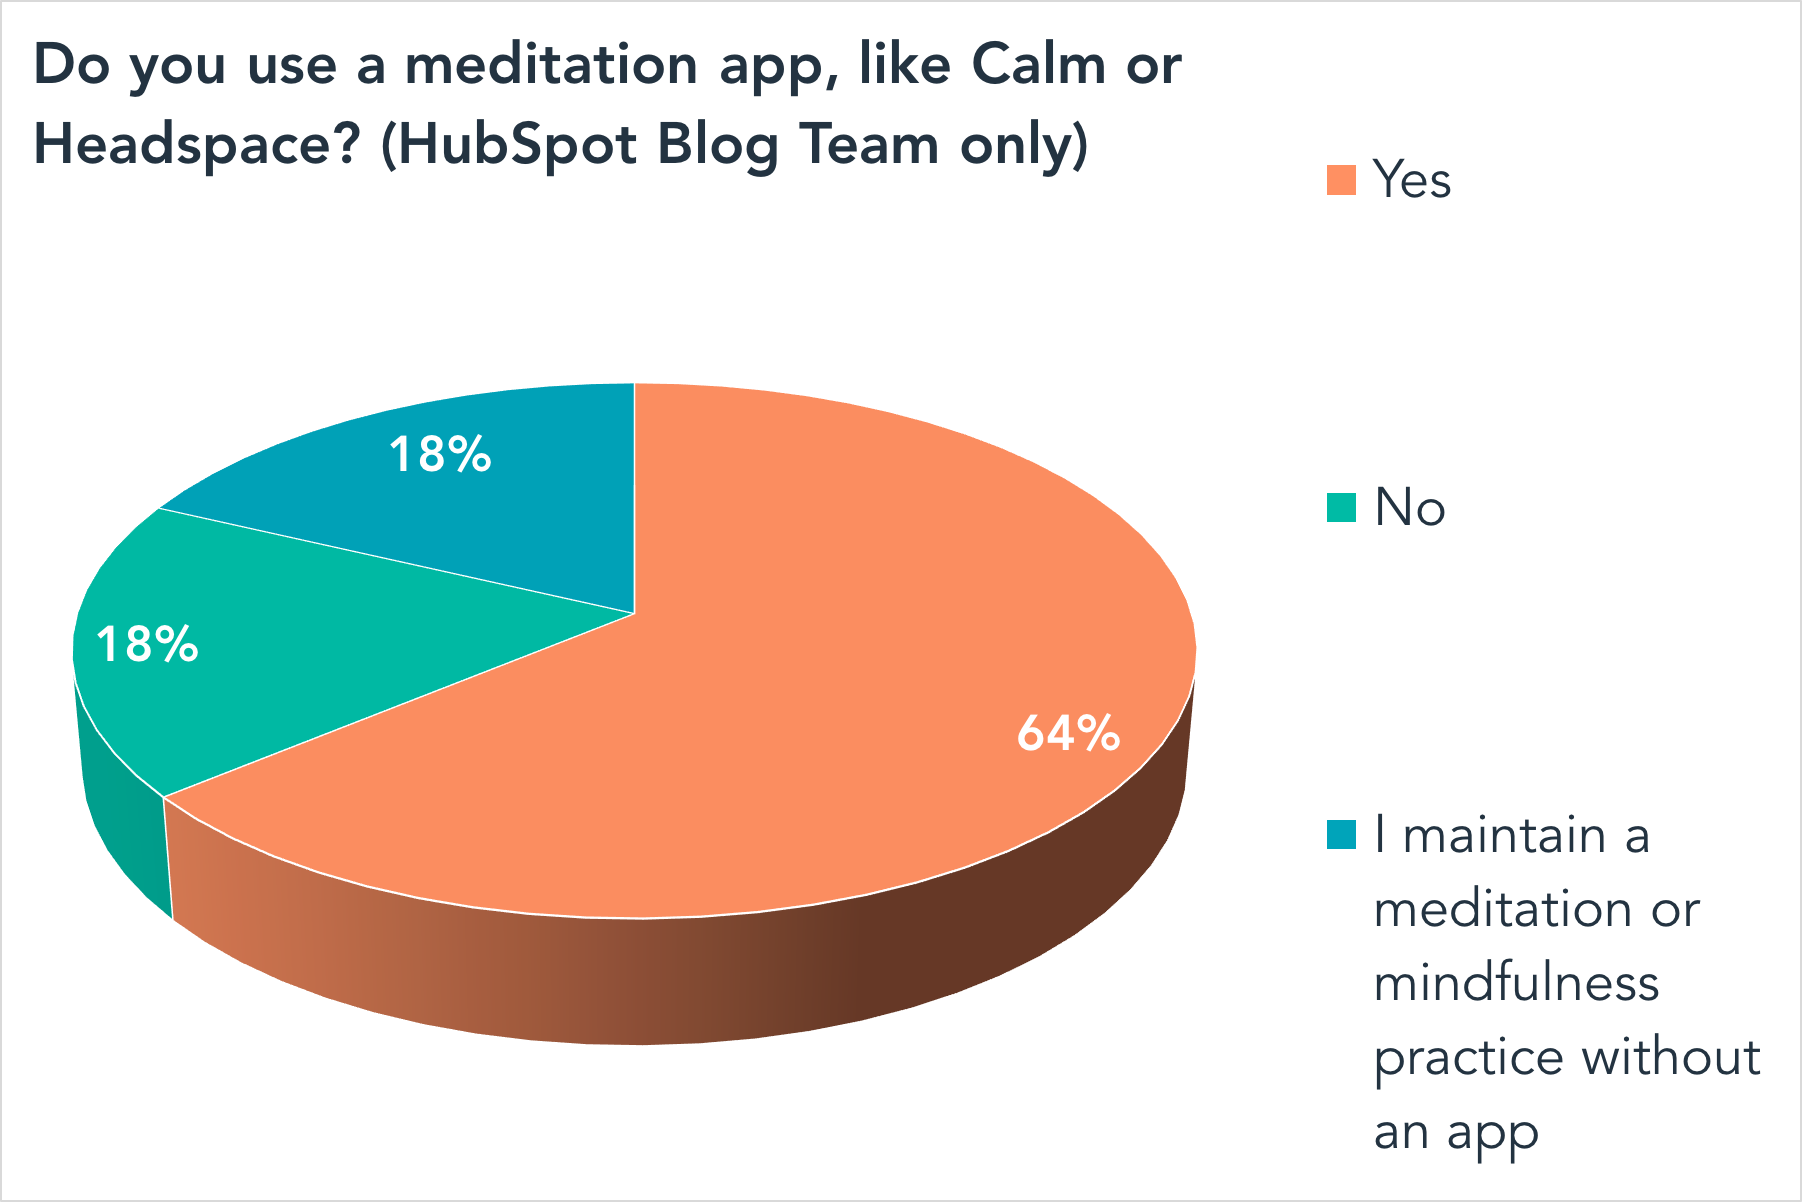 Do you use a meditation app, like Calm or Headspace? (HubSpot Blog Team only)